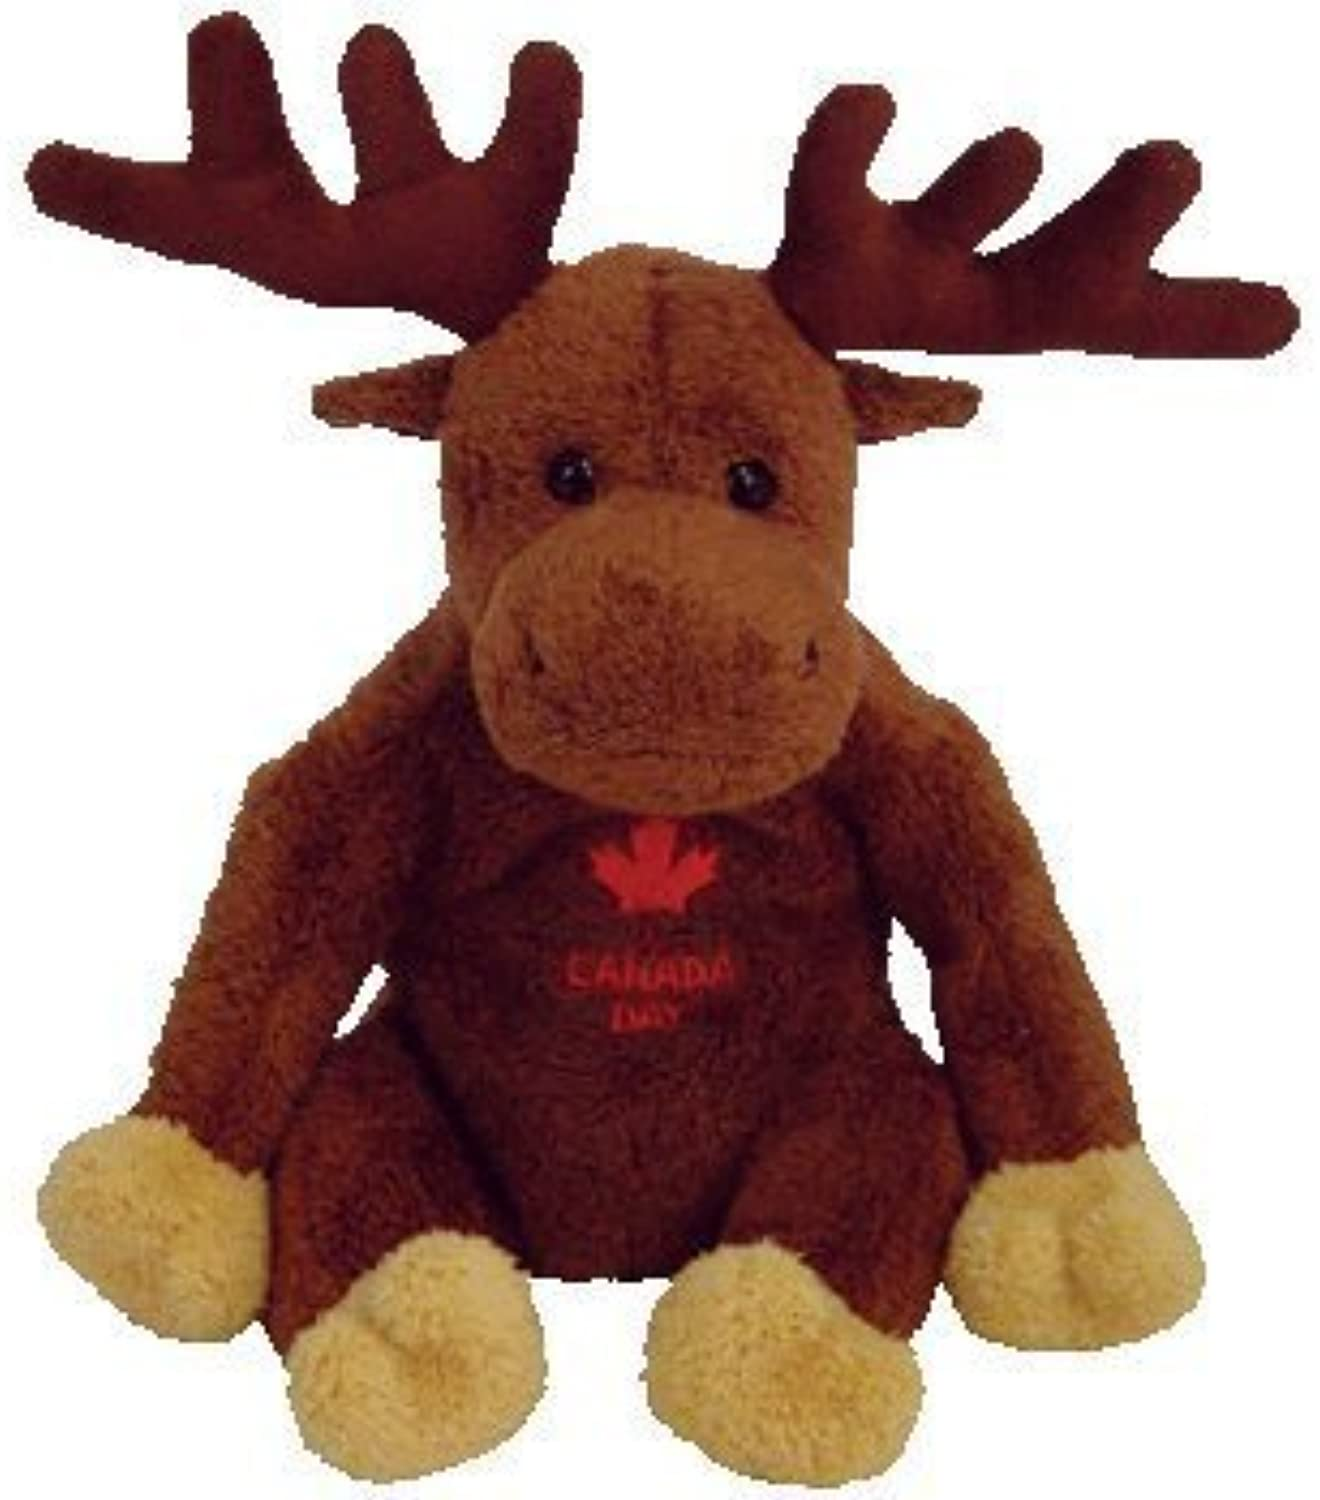 TY Beanie Baby - VILLAGER the Canadian Moose (Canadian Exclusive) by Ty